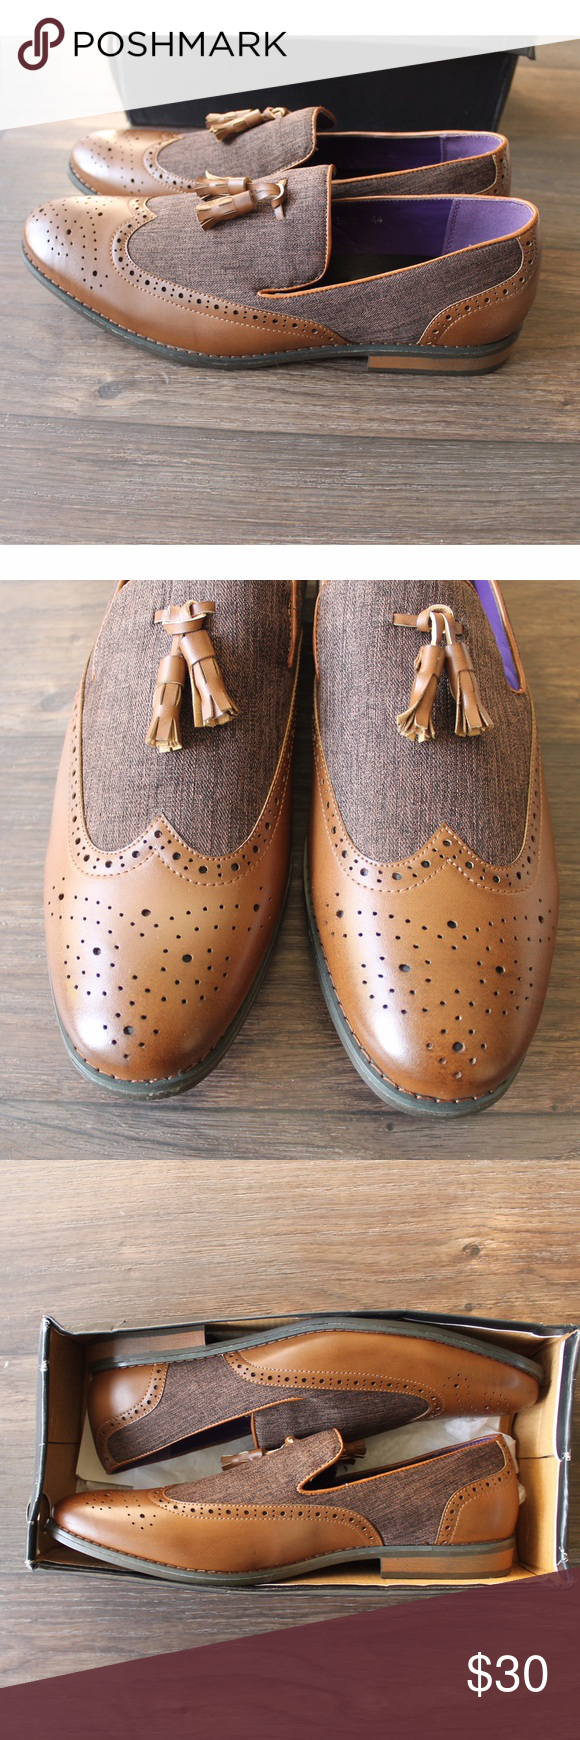 New In Box Oxfords Tassel front oxford dress shoes. Wingtip balmoral with perforated brogue front. Two tones- cognac and brown woven cloth. Size 40. Never worn Shoes Oxfords & Derbys